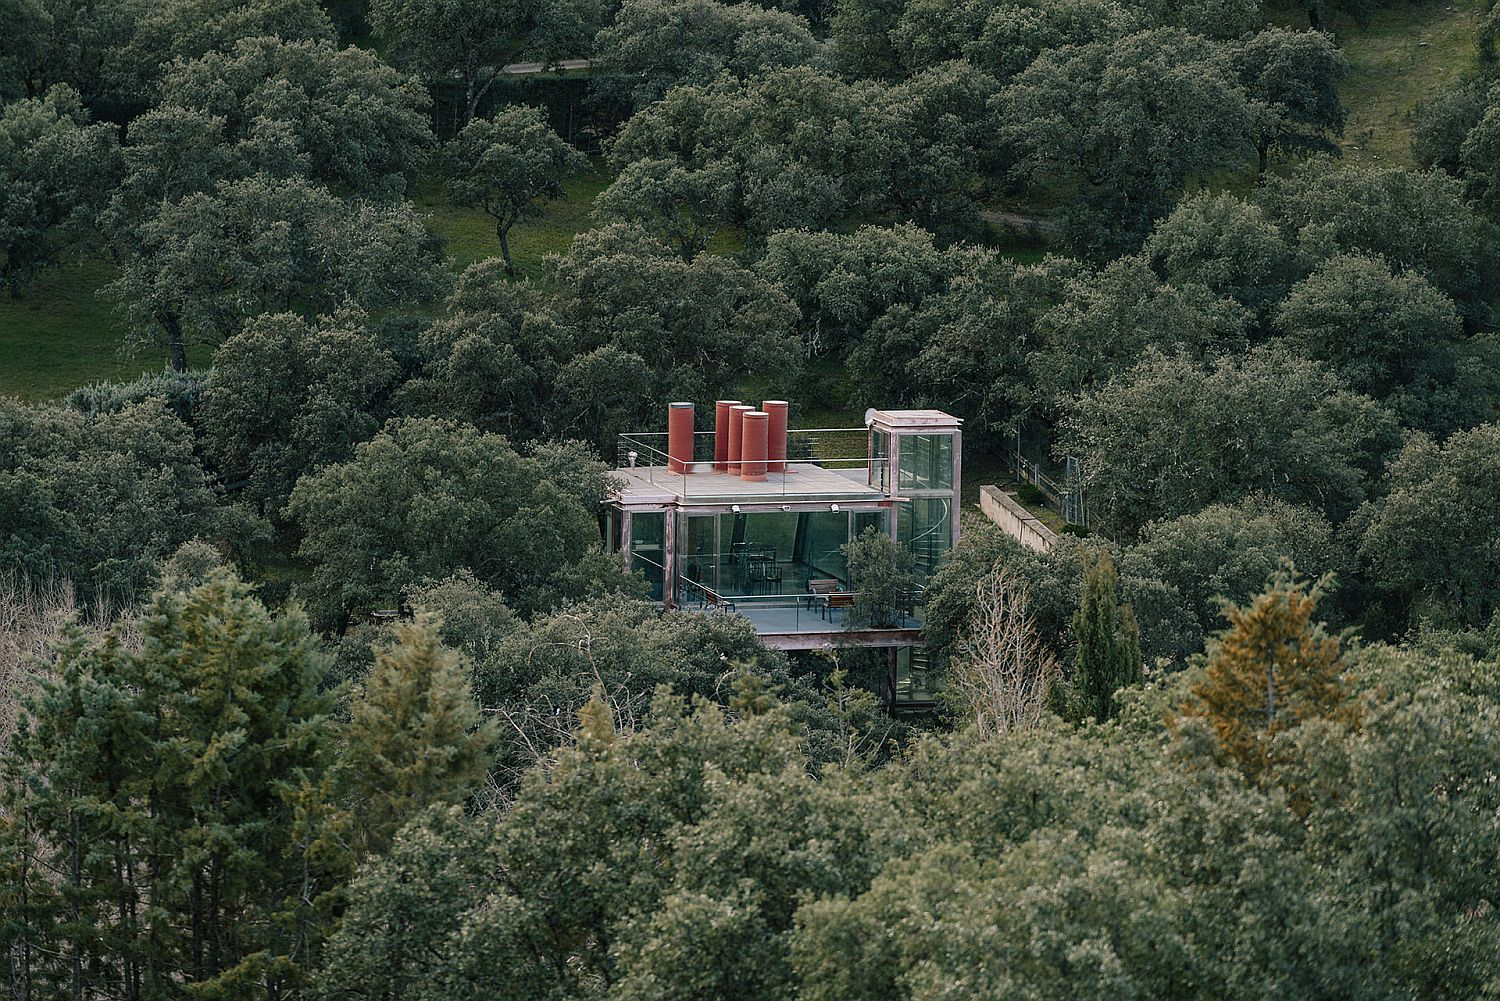 Amazing-seculded-pavilion-wrapped-in-forest-greenery-offers-serenity-and-solitude